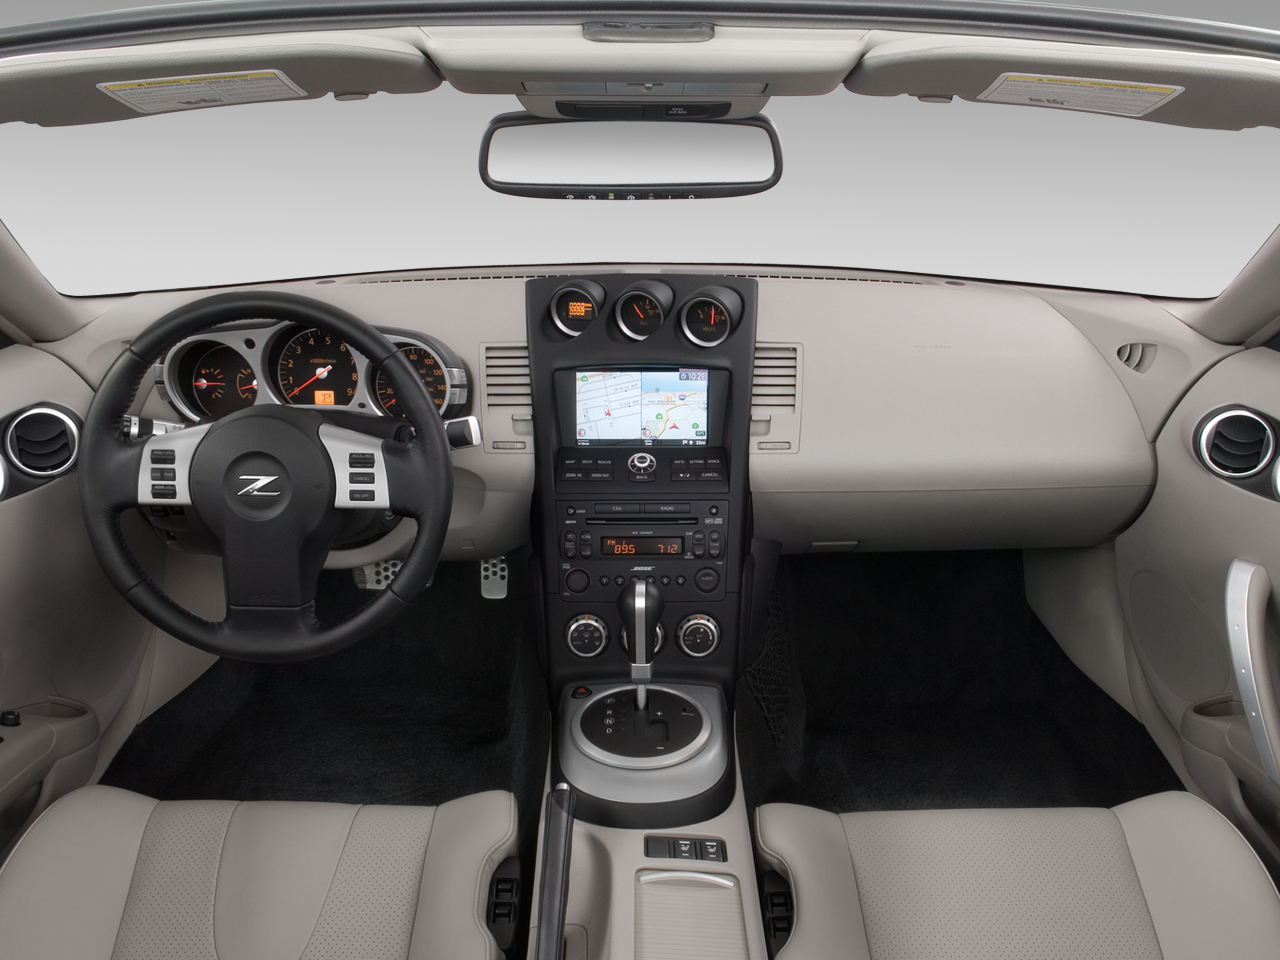 2008 nissan 350z roadster nissan convertible sport review 4372 vanachro Image collections